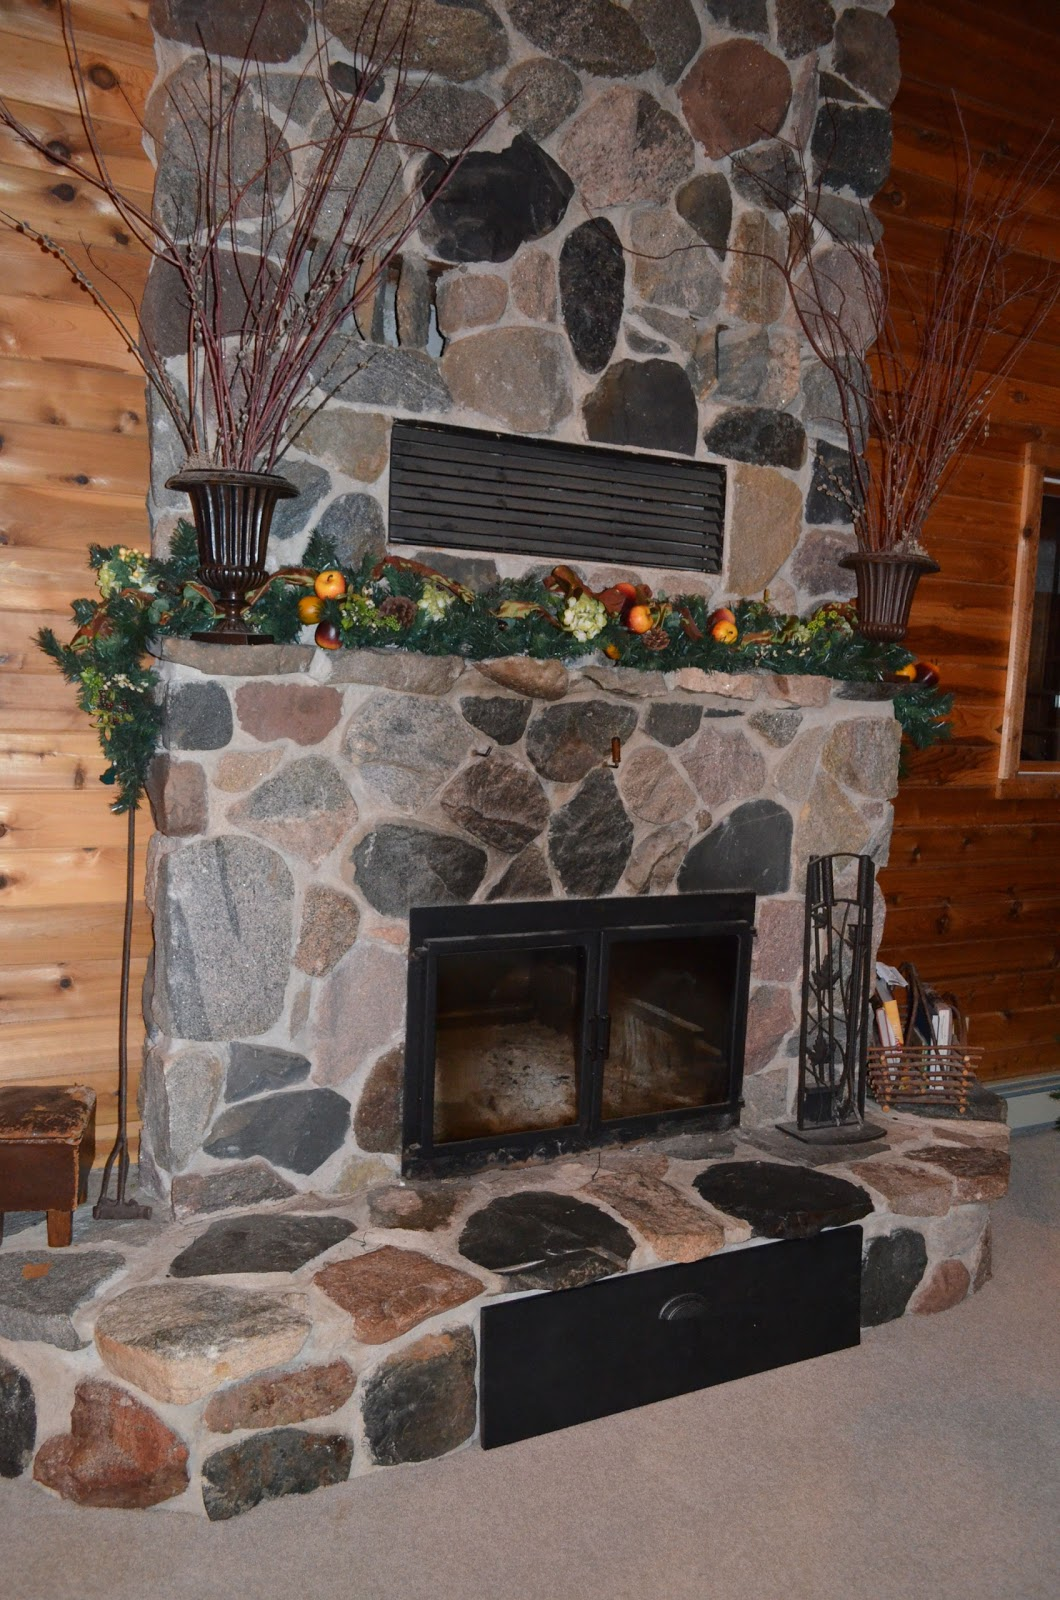 Artful Panoply: Fireplace Vent Cover to Keep out Draft